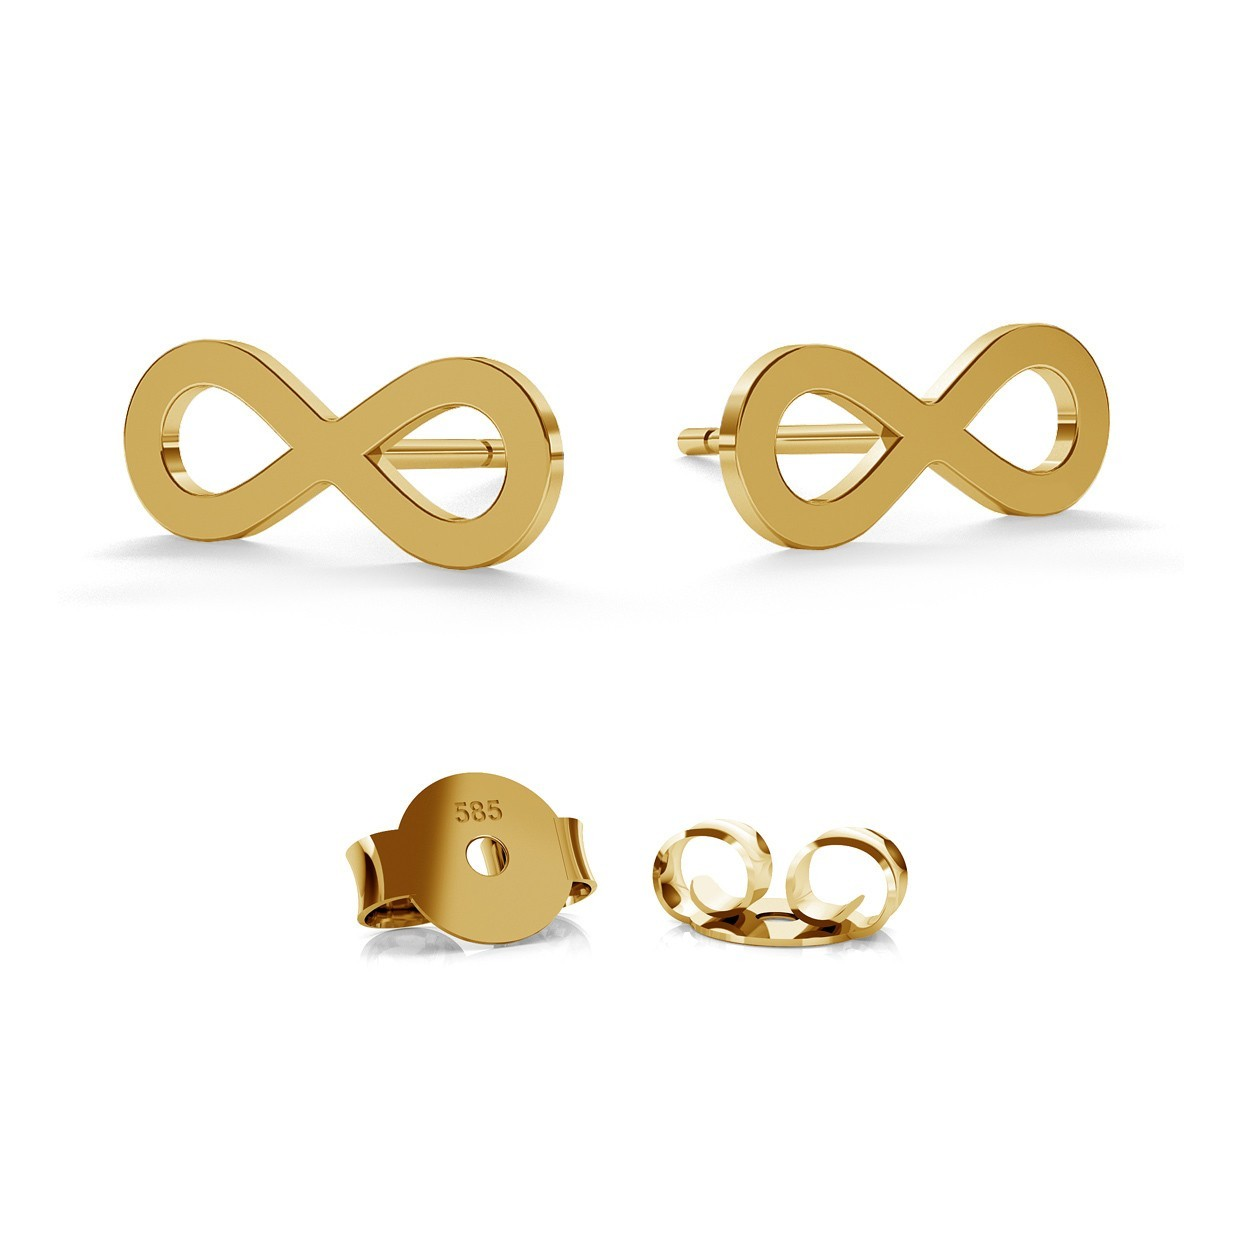 14K GOLD INFINITY SIGN EARRING, MODEL 589